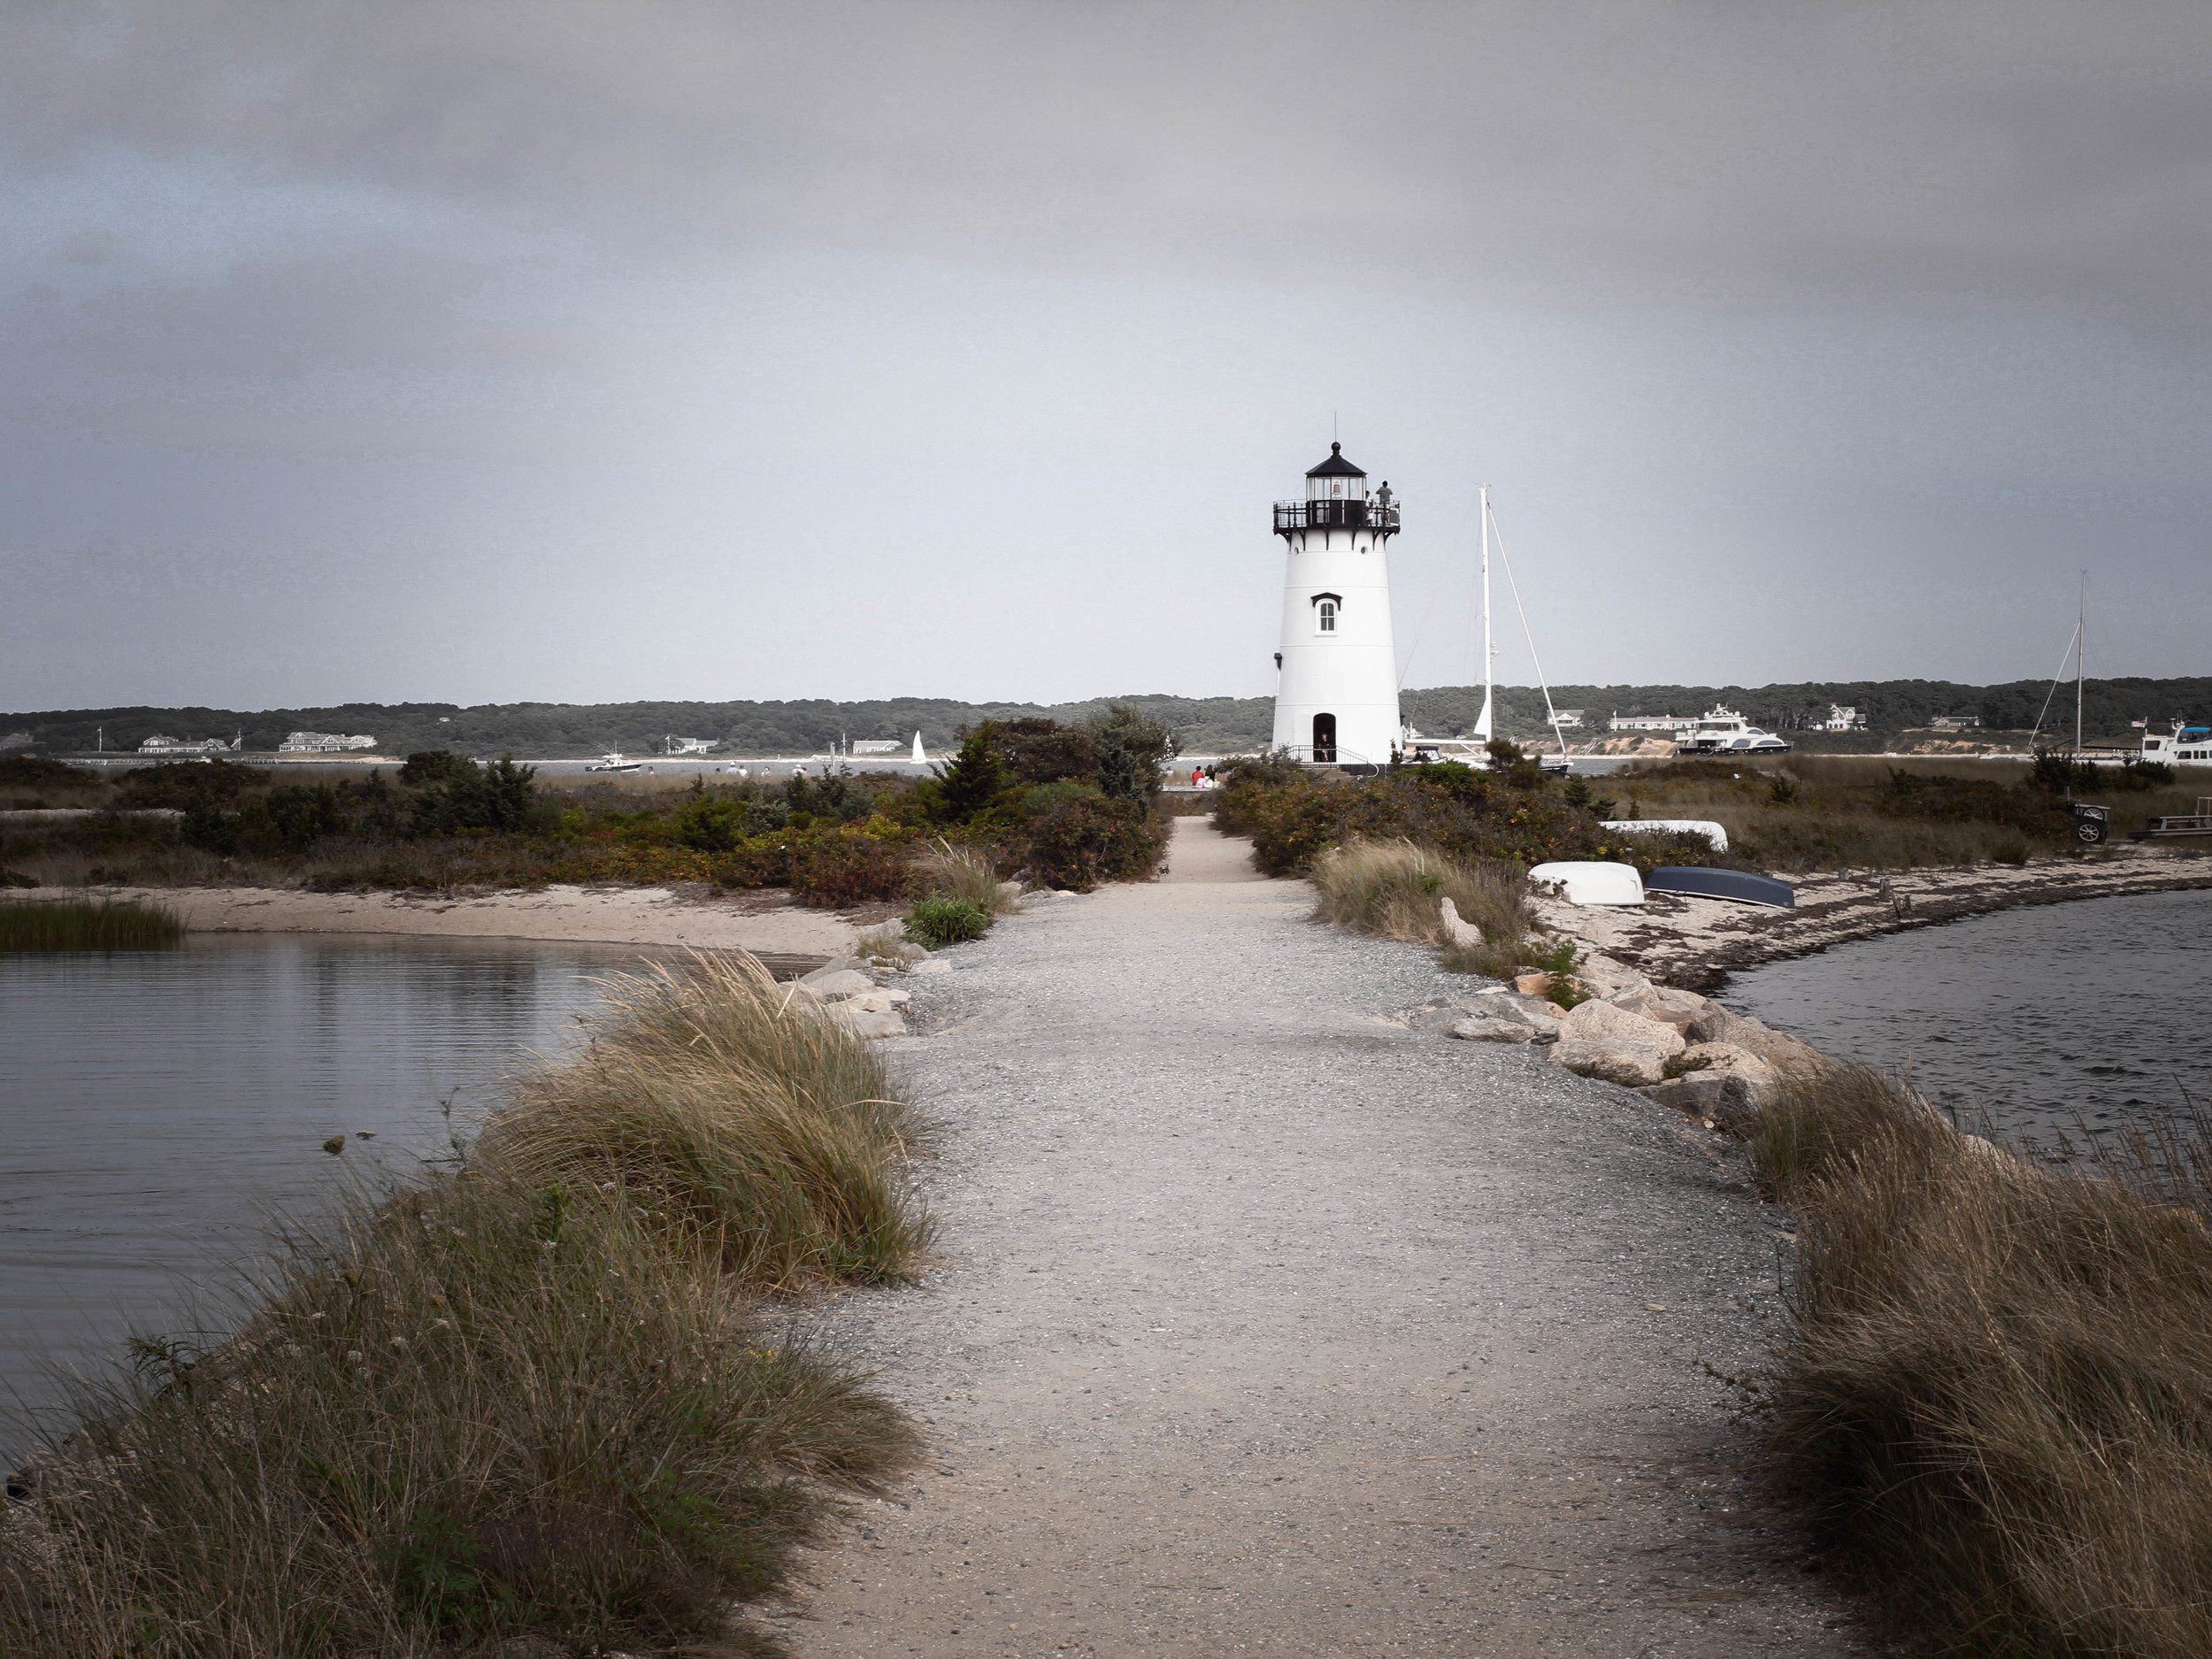 e lighthouse.jpg